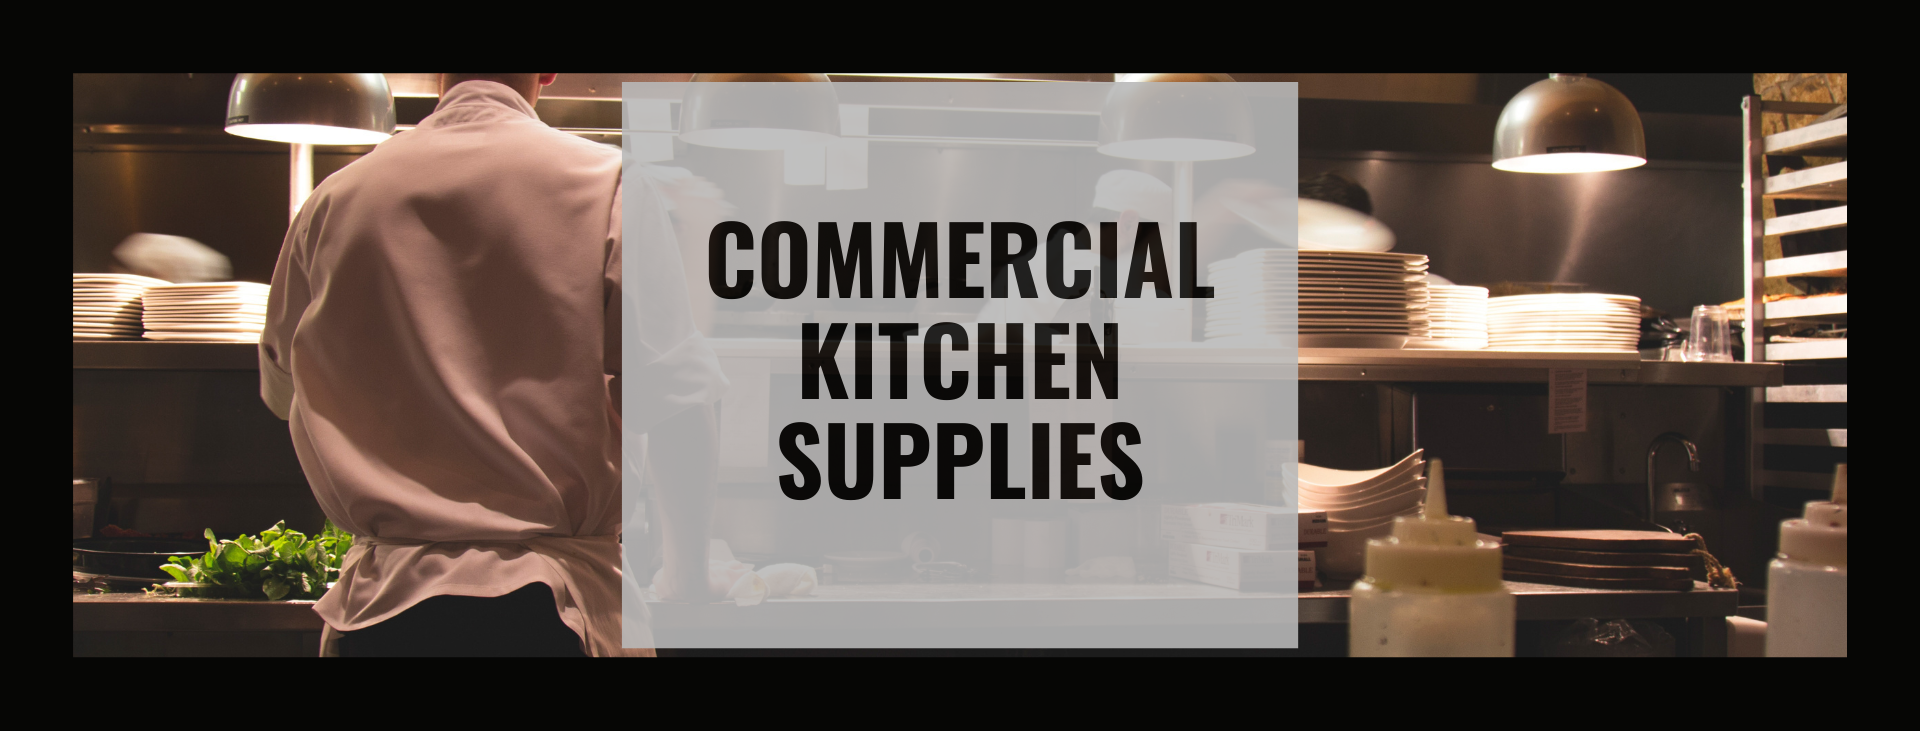 Online Superstore for Commercial Kitchens